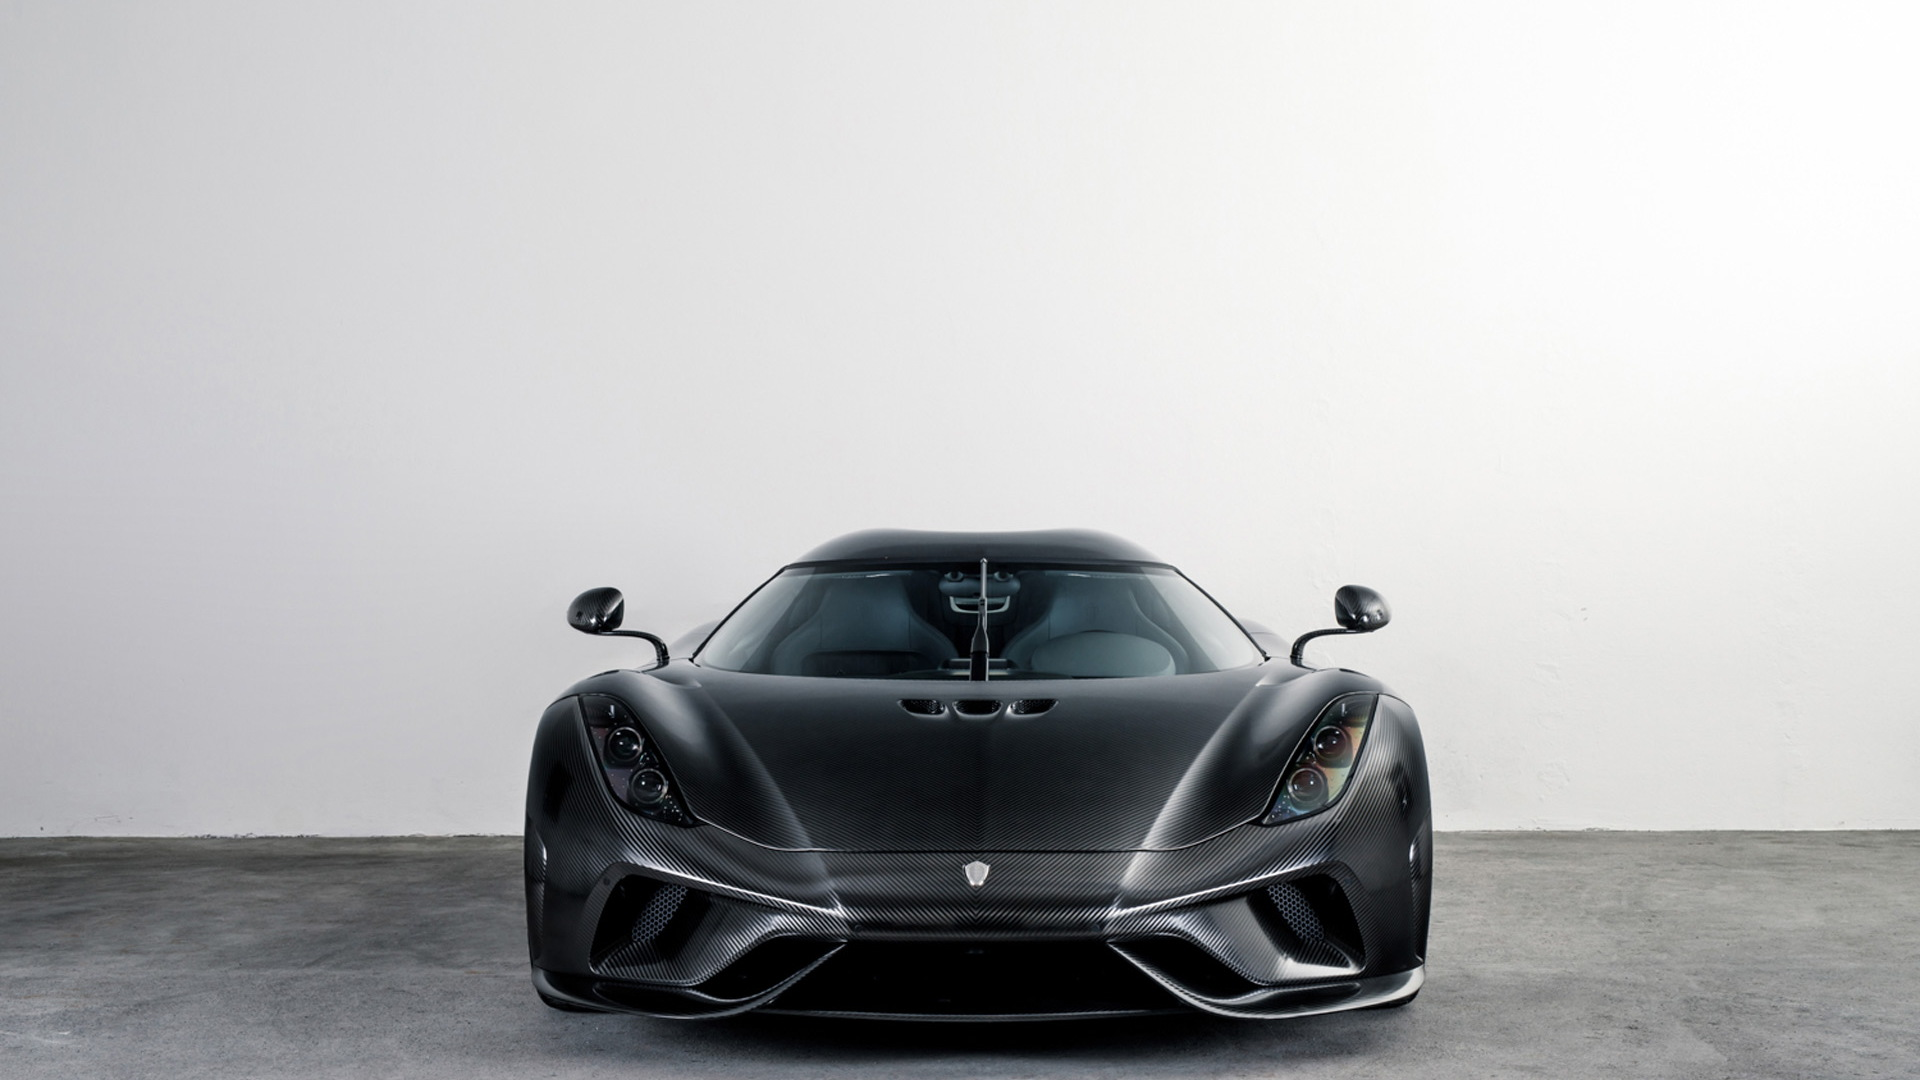 Koenigsegg Regera in bare carbon fiber - Image via Keno Zache Photography/Carage